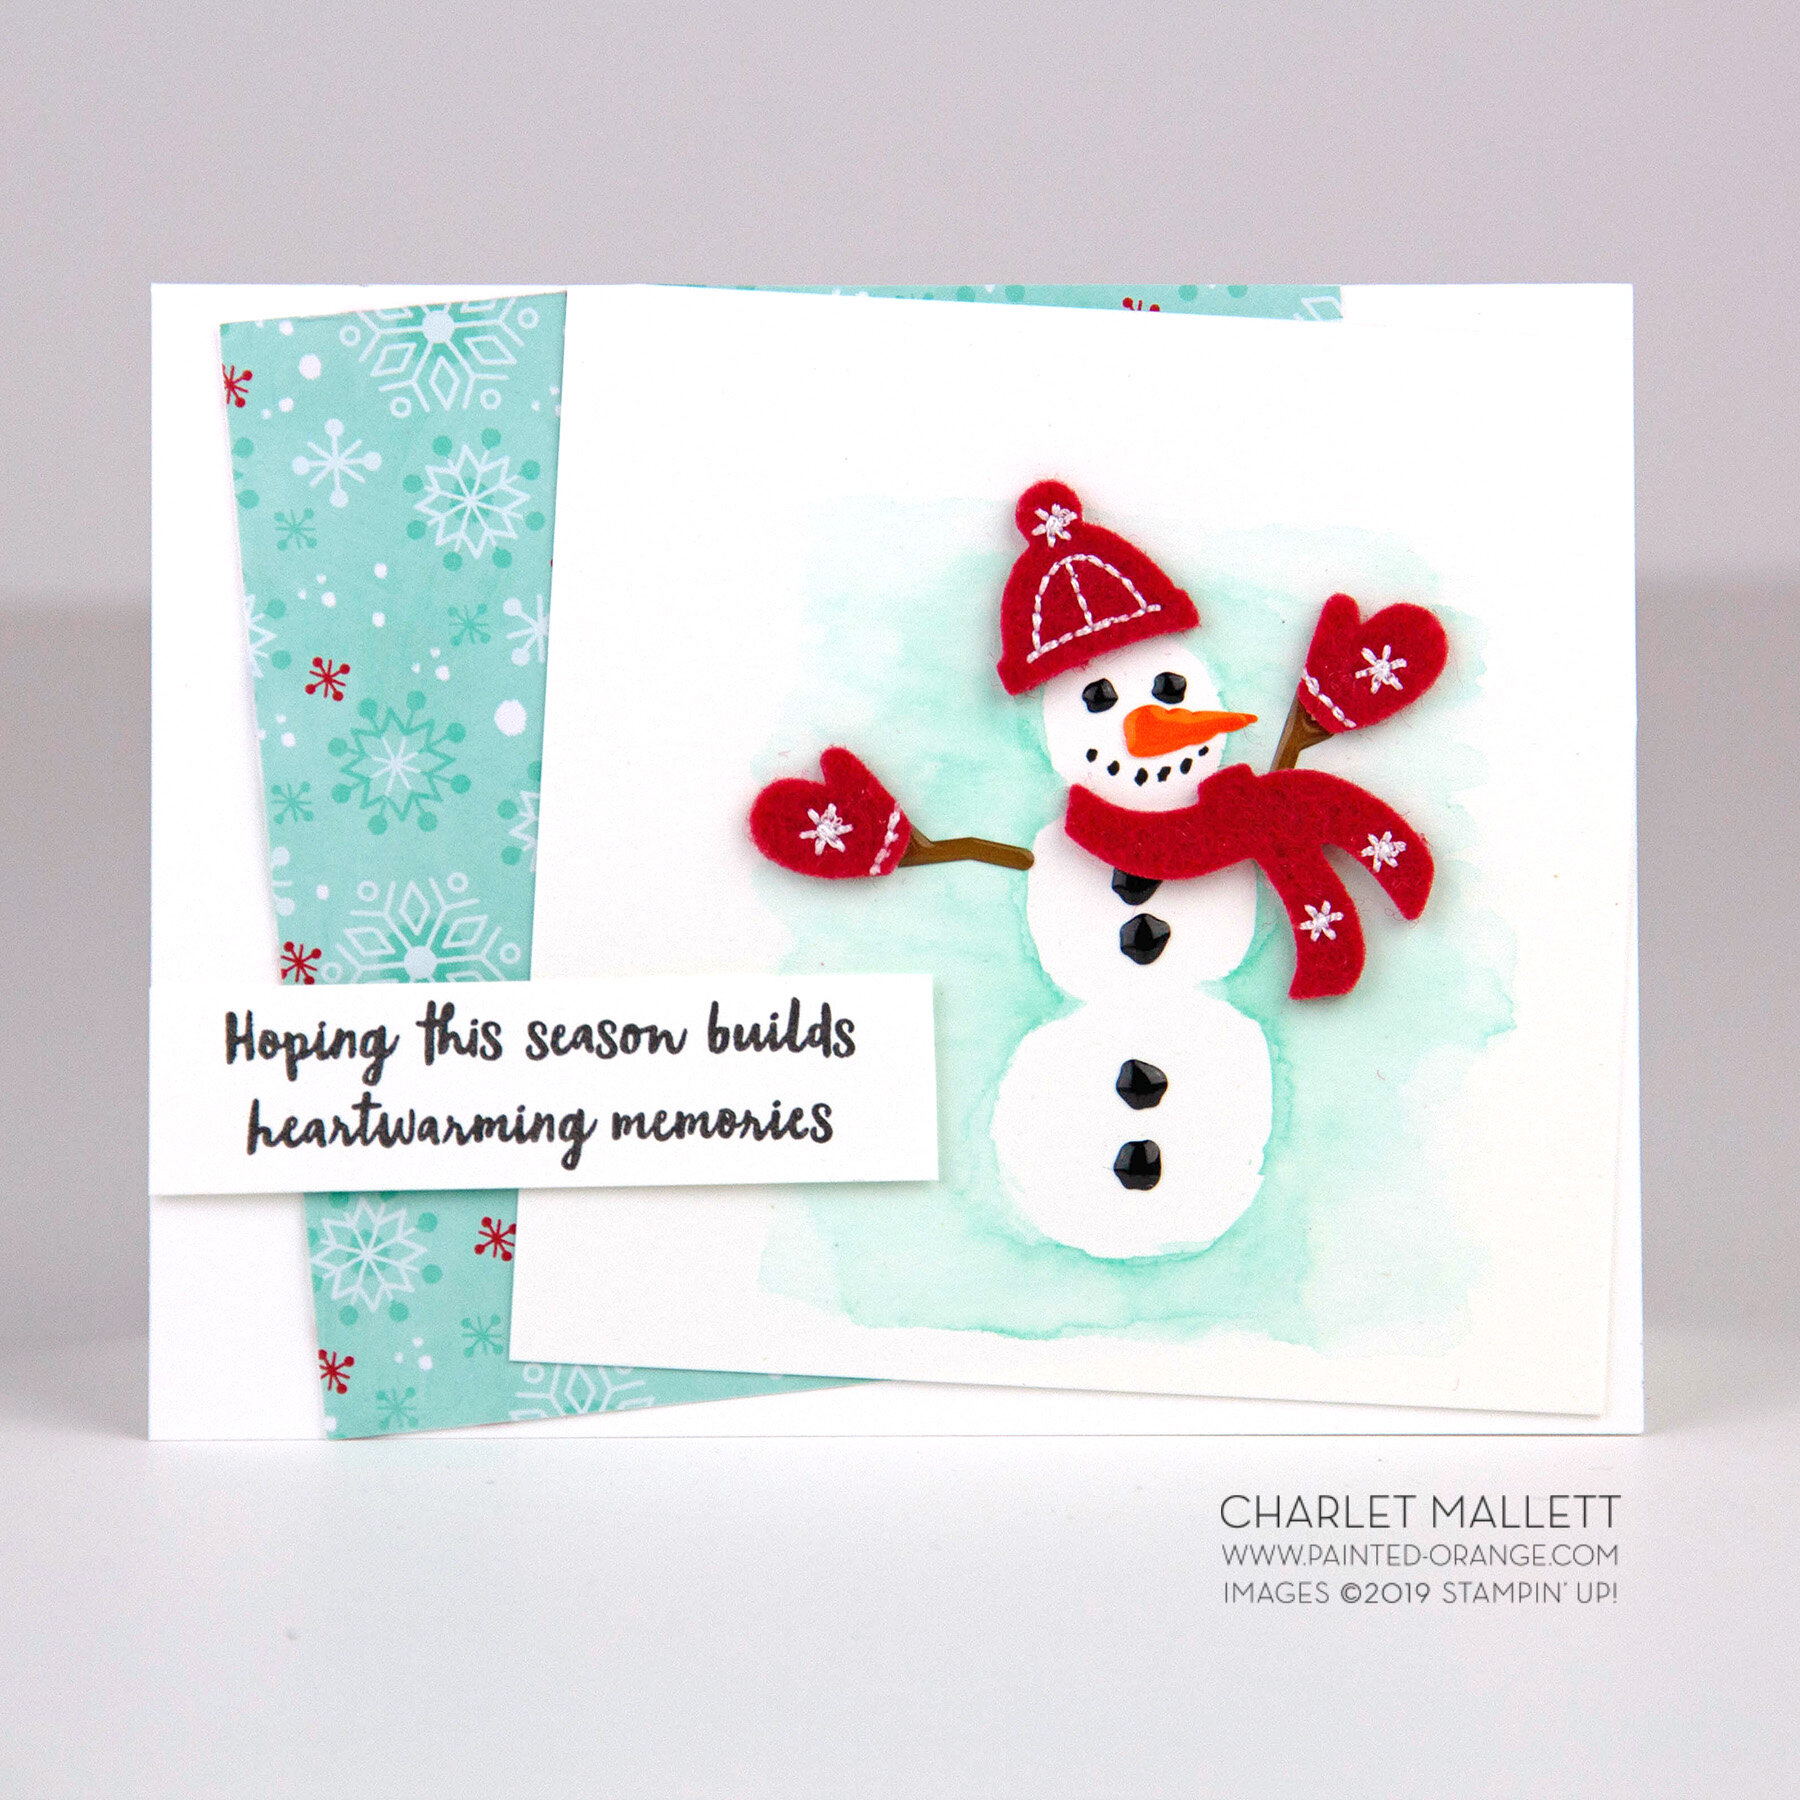 Let it Snow - Snowman card. Charlet Mallett, Stampin' Up!